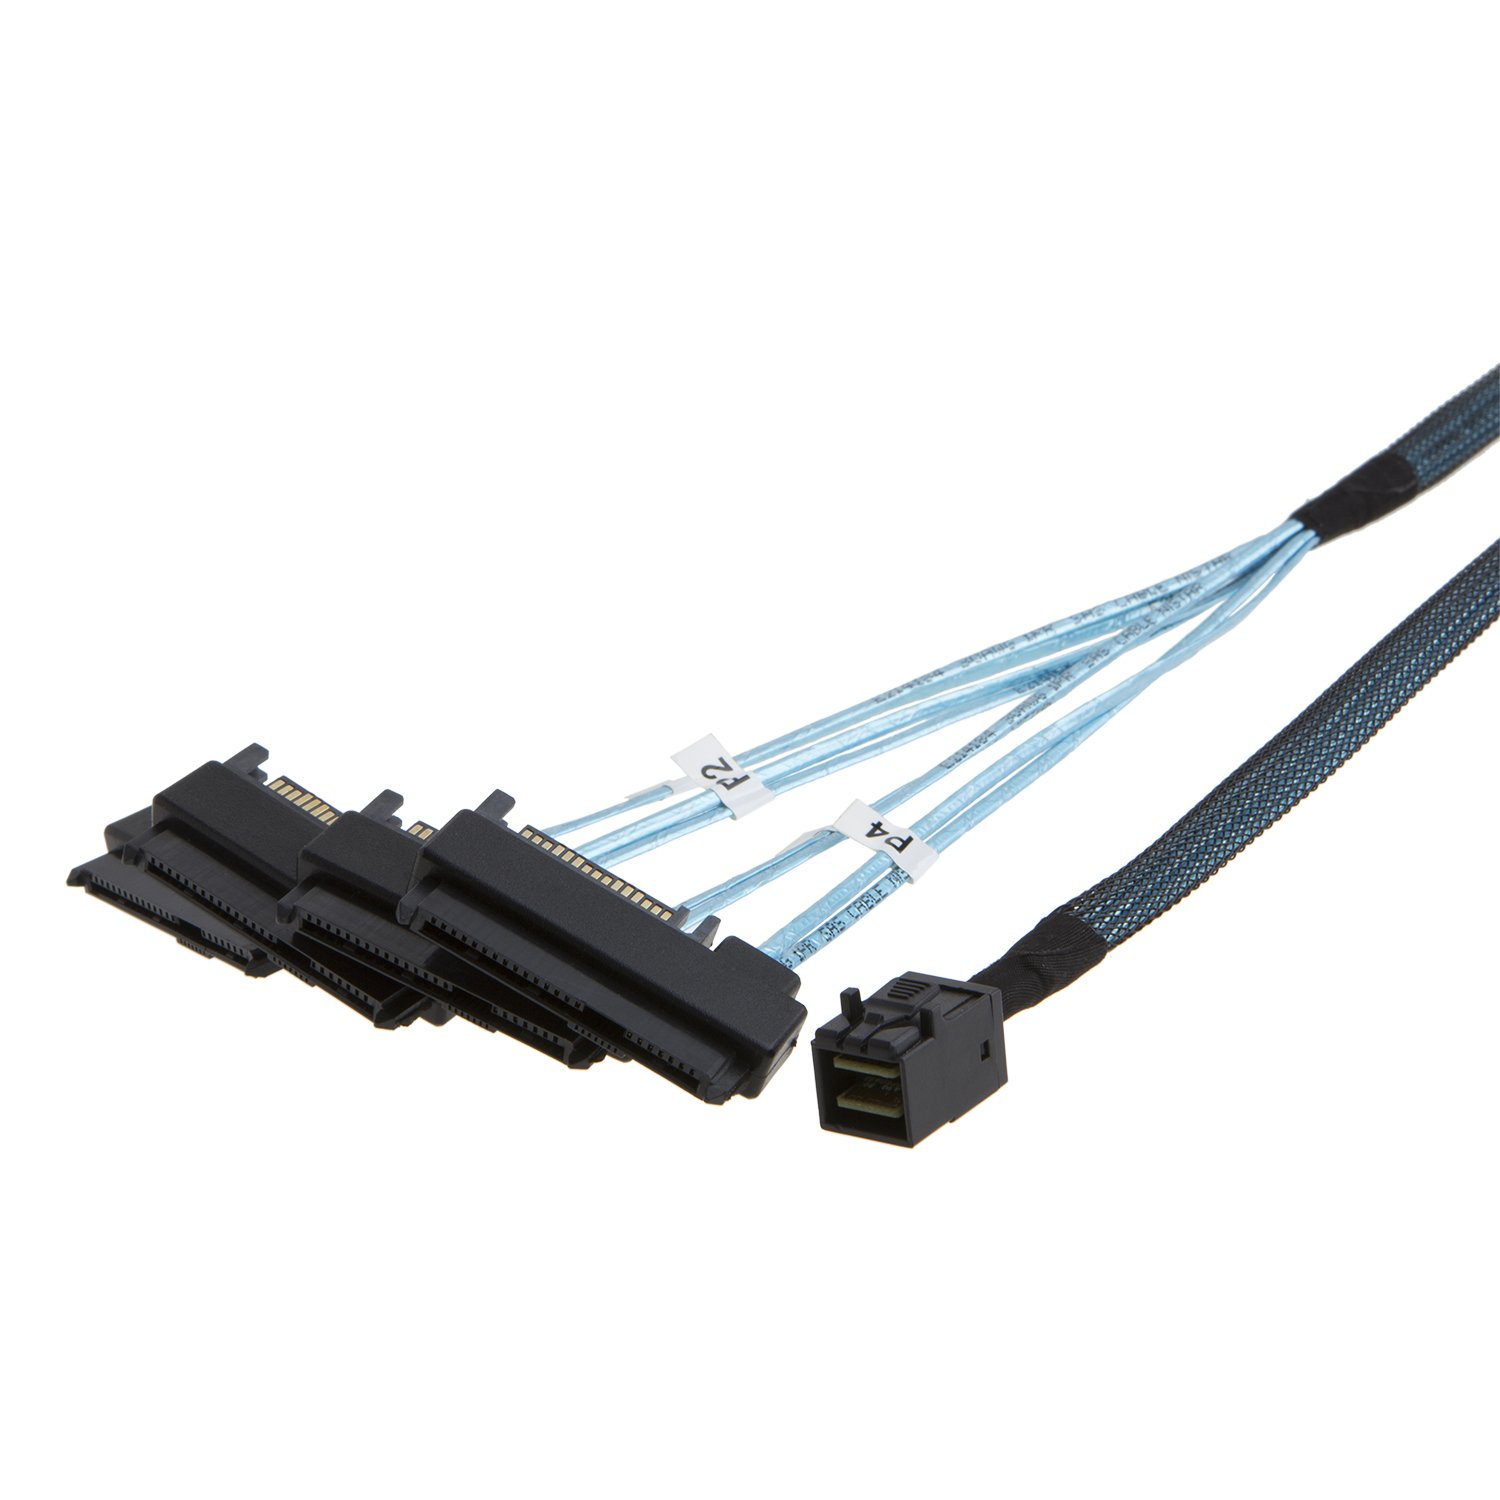 CableCreation Internal Mini SAS SFF-8643 to (4) 29pin SFF-8482 connectors with SAS 15pin Power Port, 0.5M …